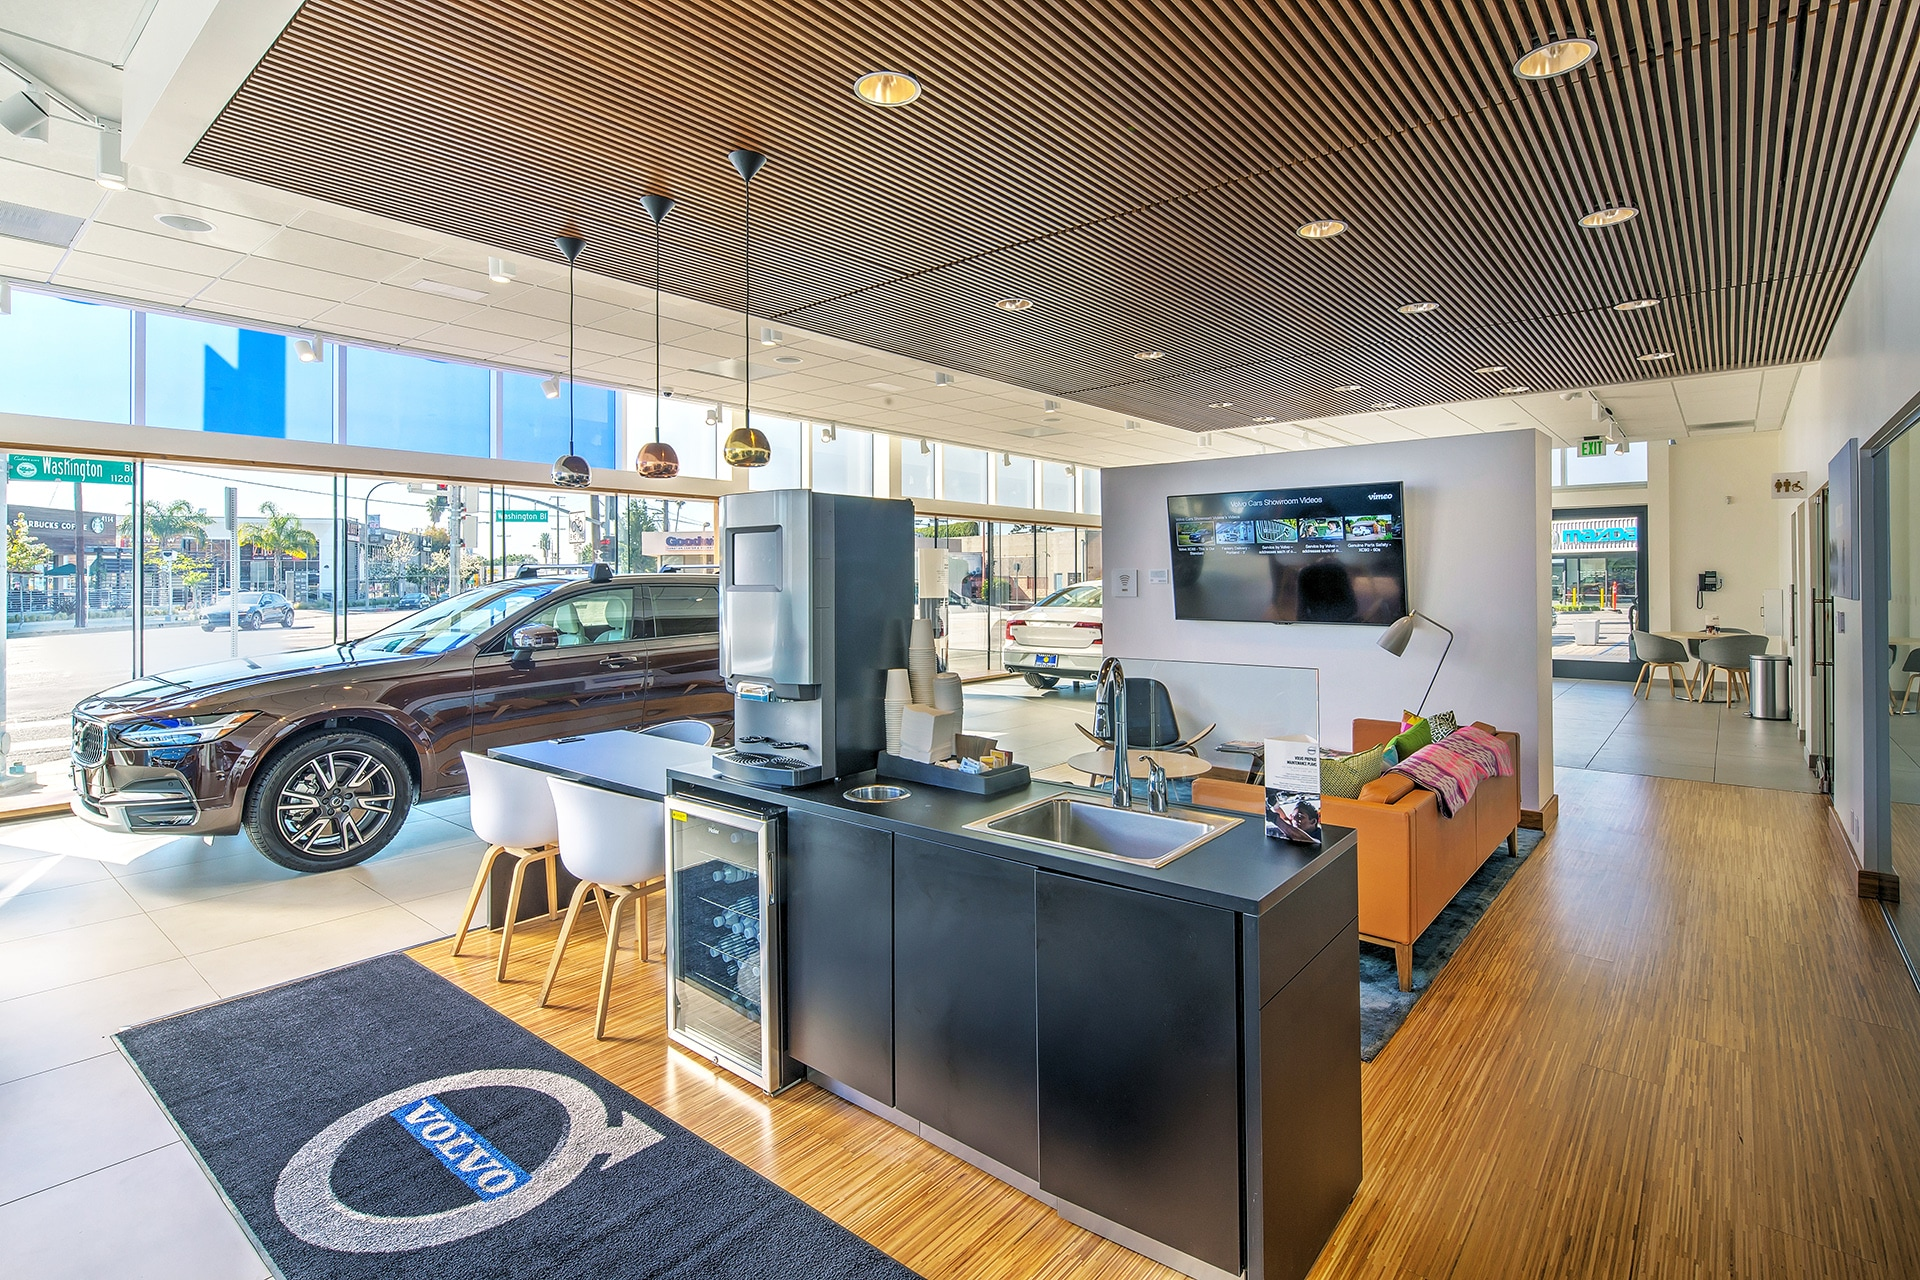 View new cars and use charging stations in our customer lounge at Culver City Volvo Cars